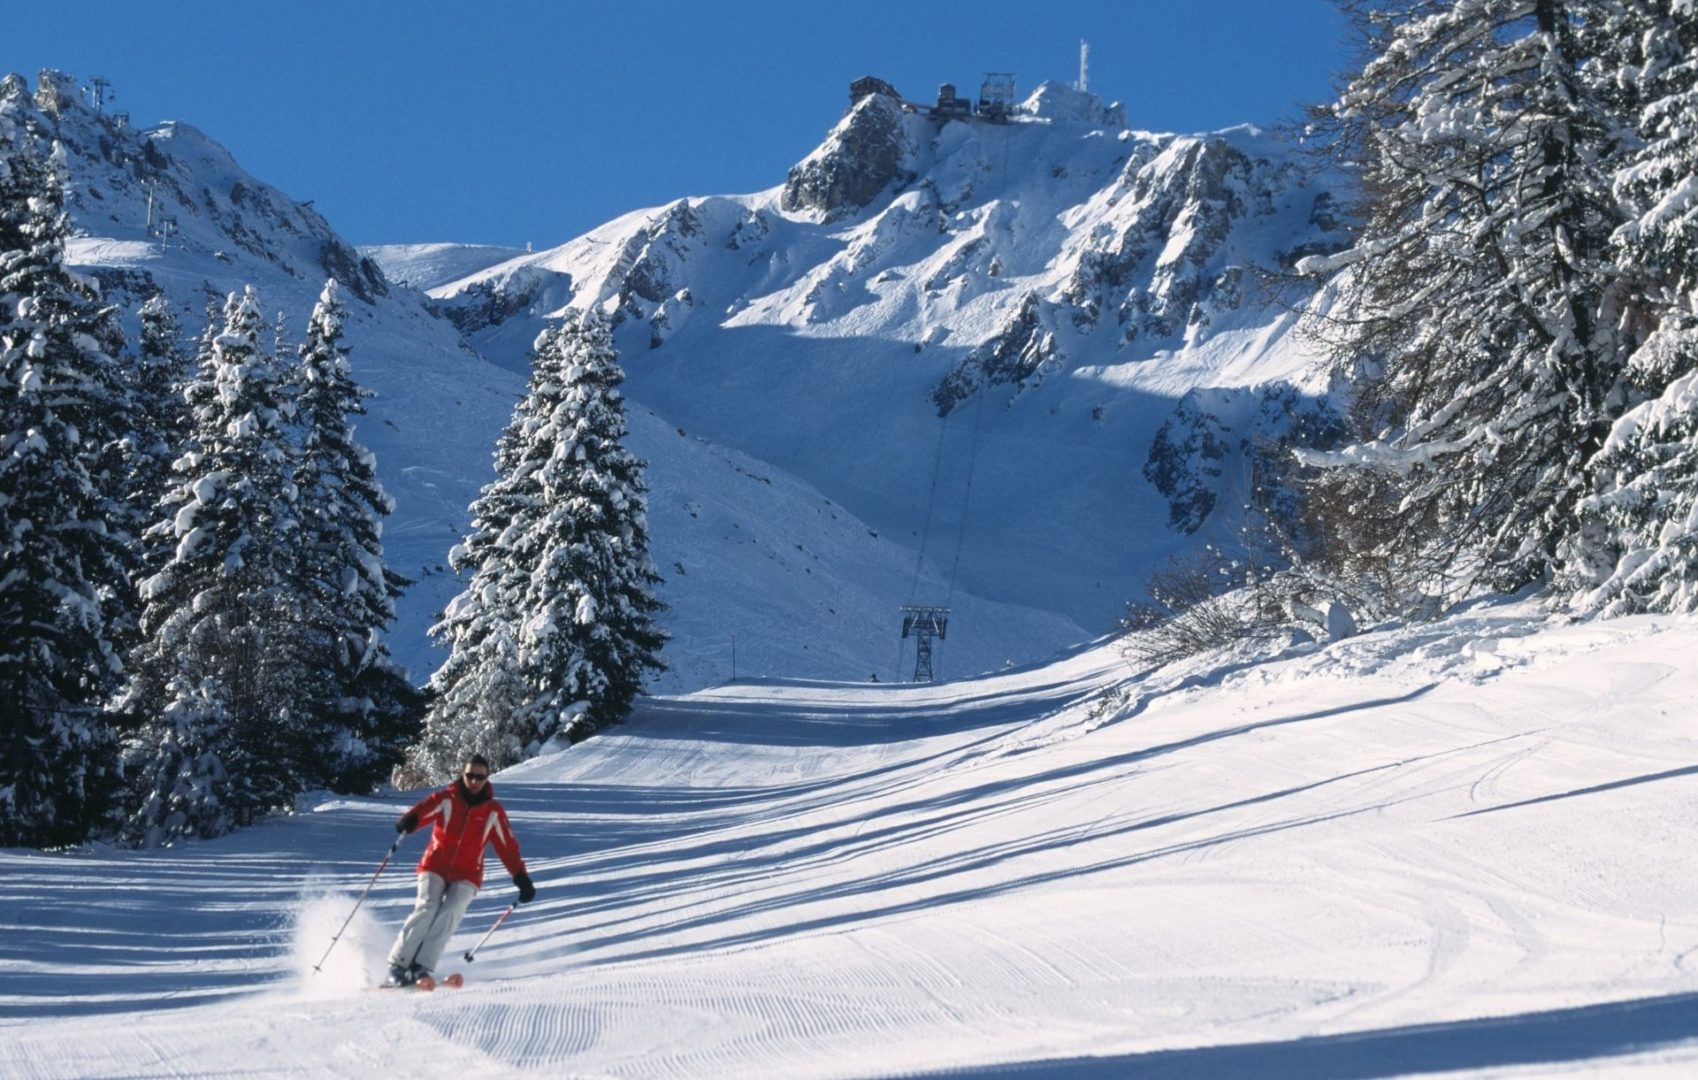 Skiing the groomed pistes of Courchevel